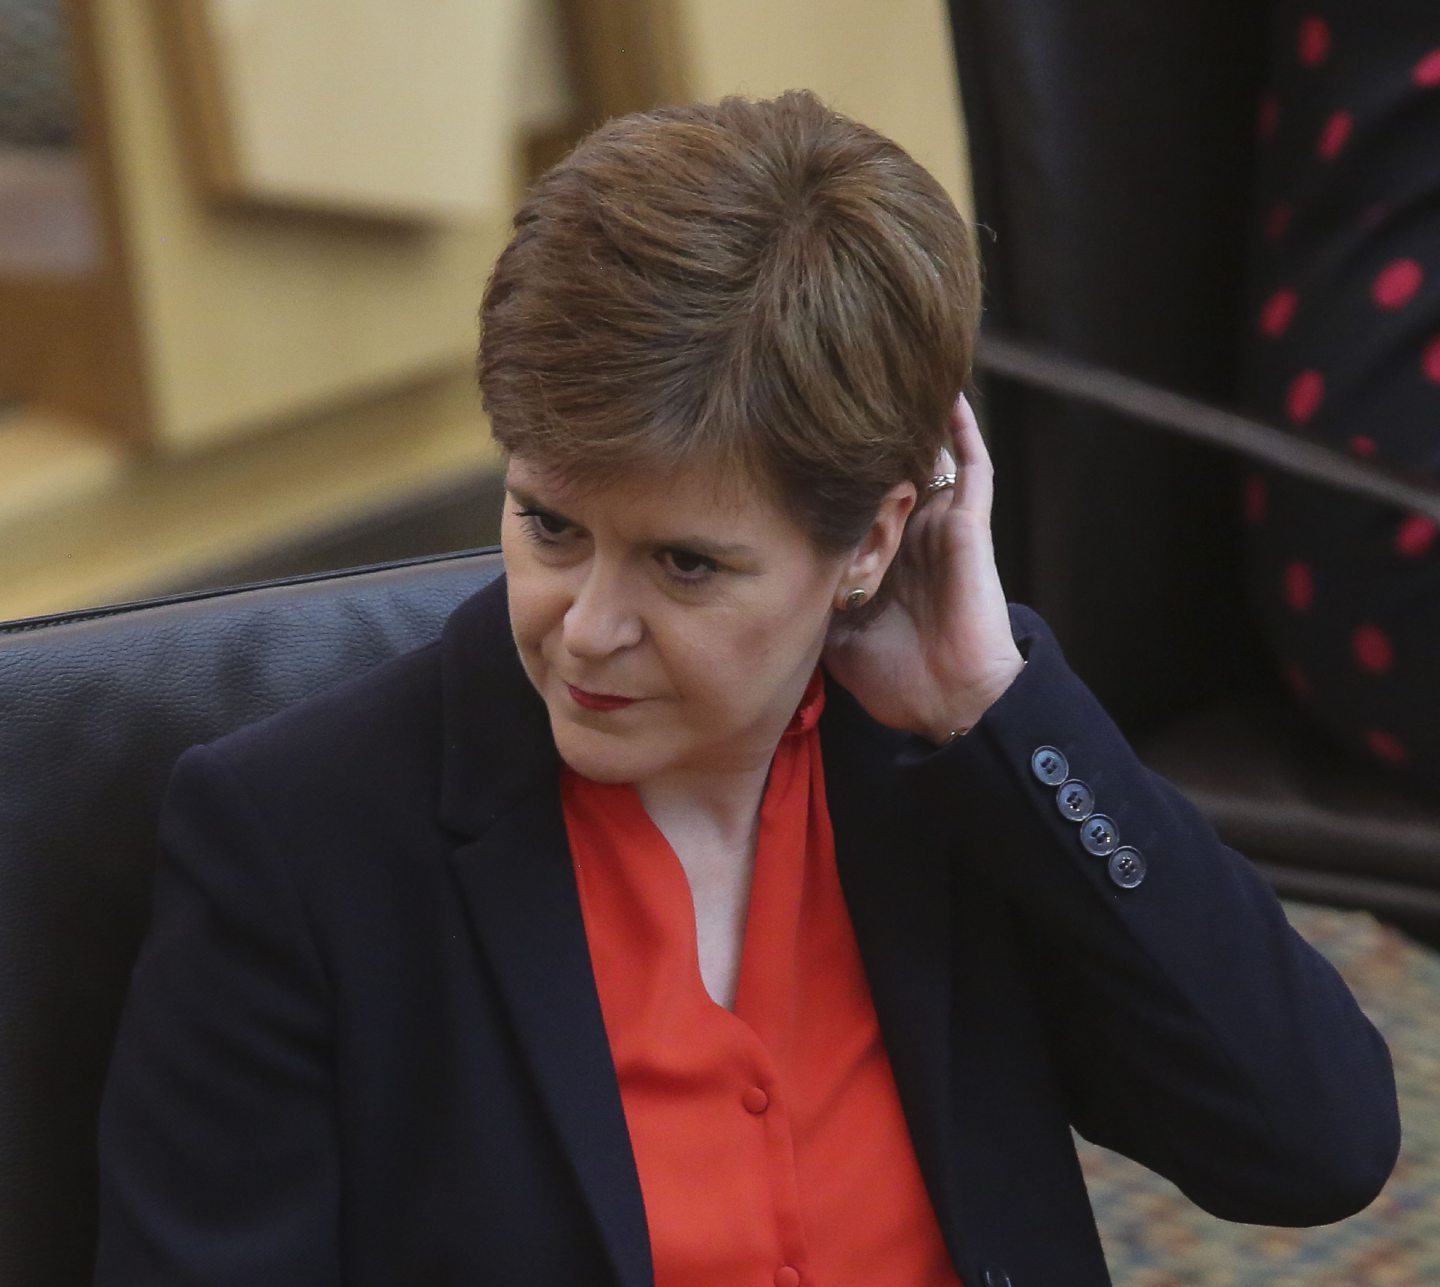 Nicola Sturgeon announced that hairdressers will reopen on July 15.